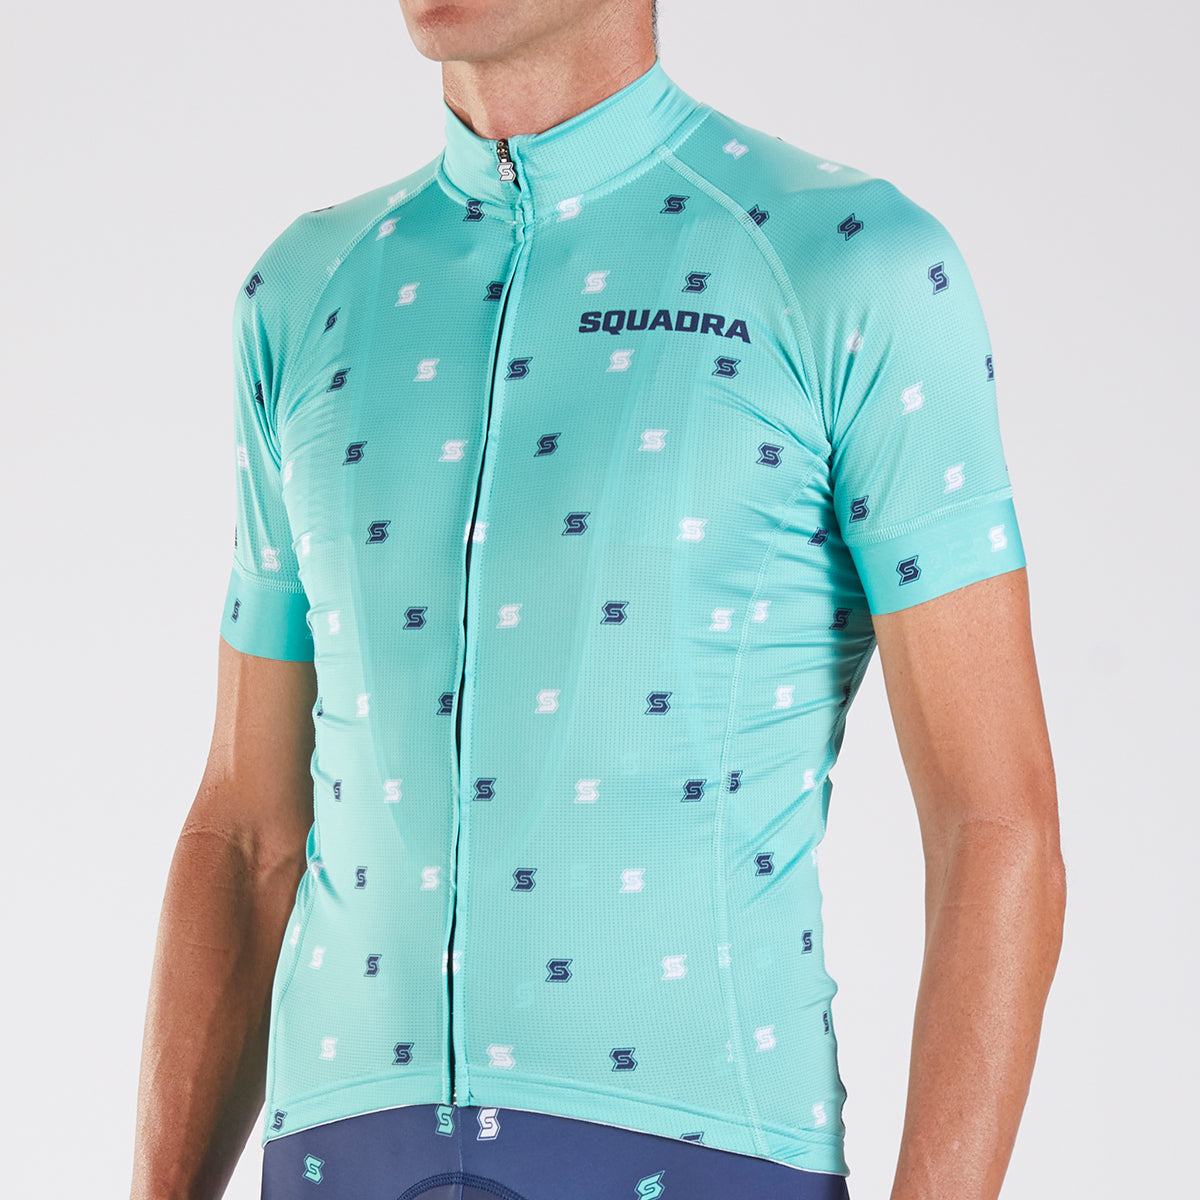 MENS PRO ISSUE JERSEY - EMBLEMA